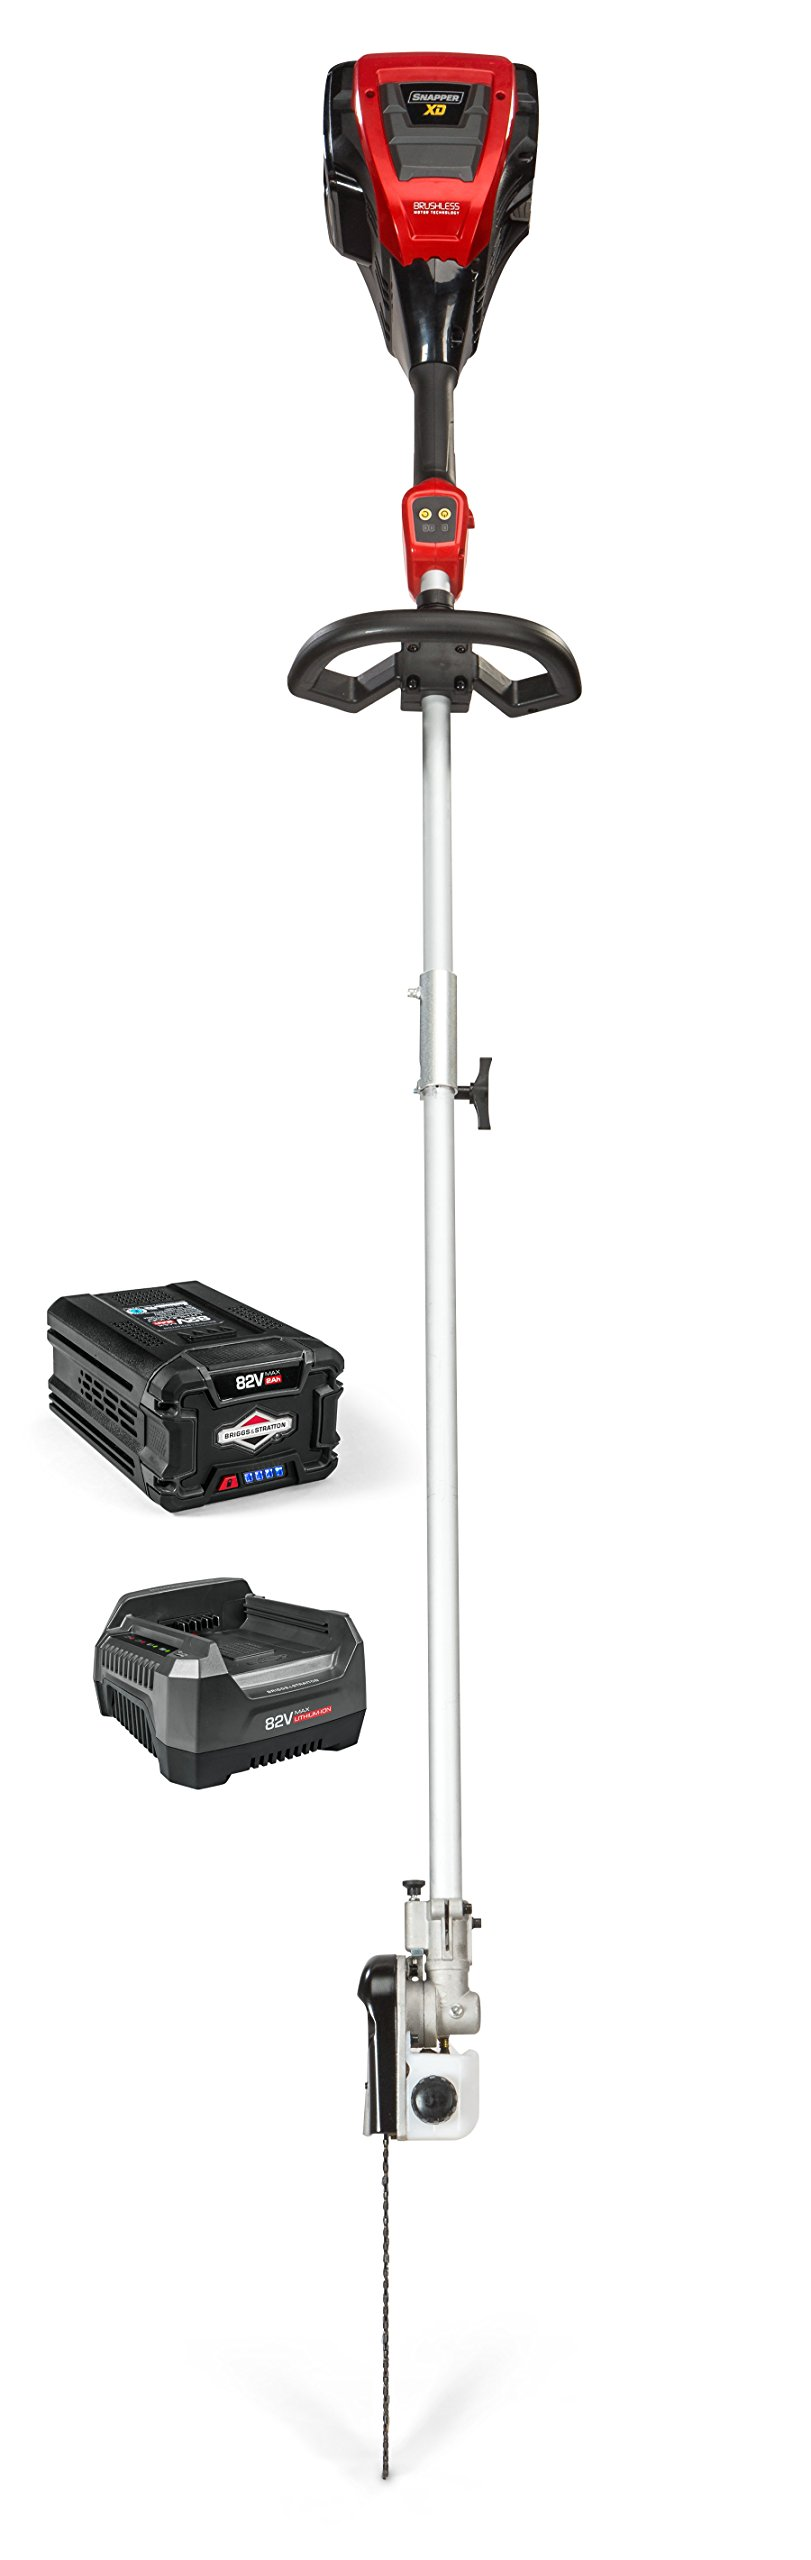 Snapper XD 82V Electric Cordless Pole Saw Kit with 2.0 Battery & Rapid Charger, 1687916, SXD82ZPSK